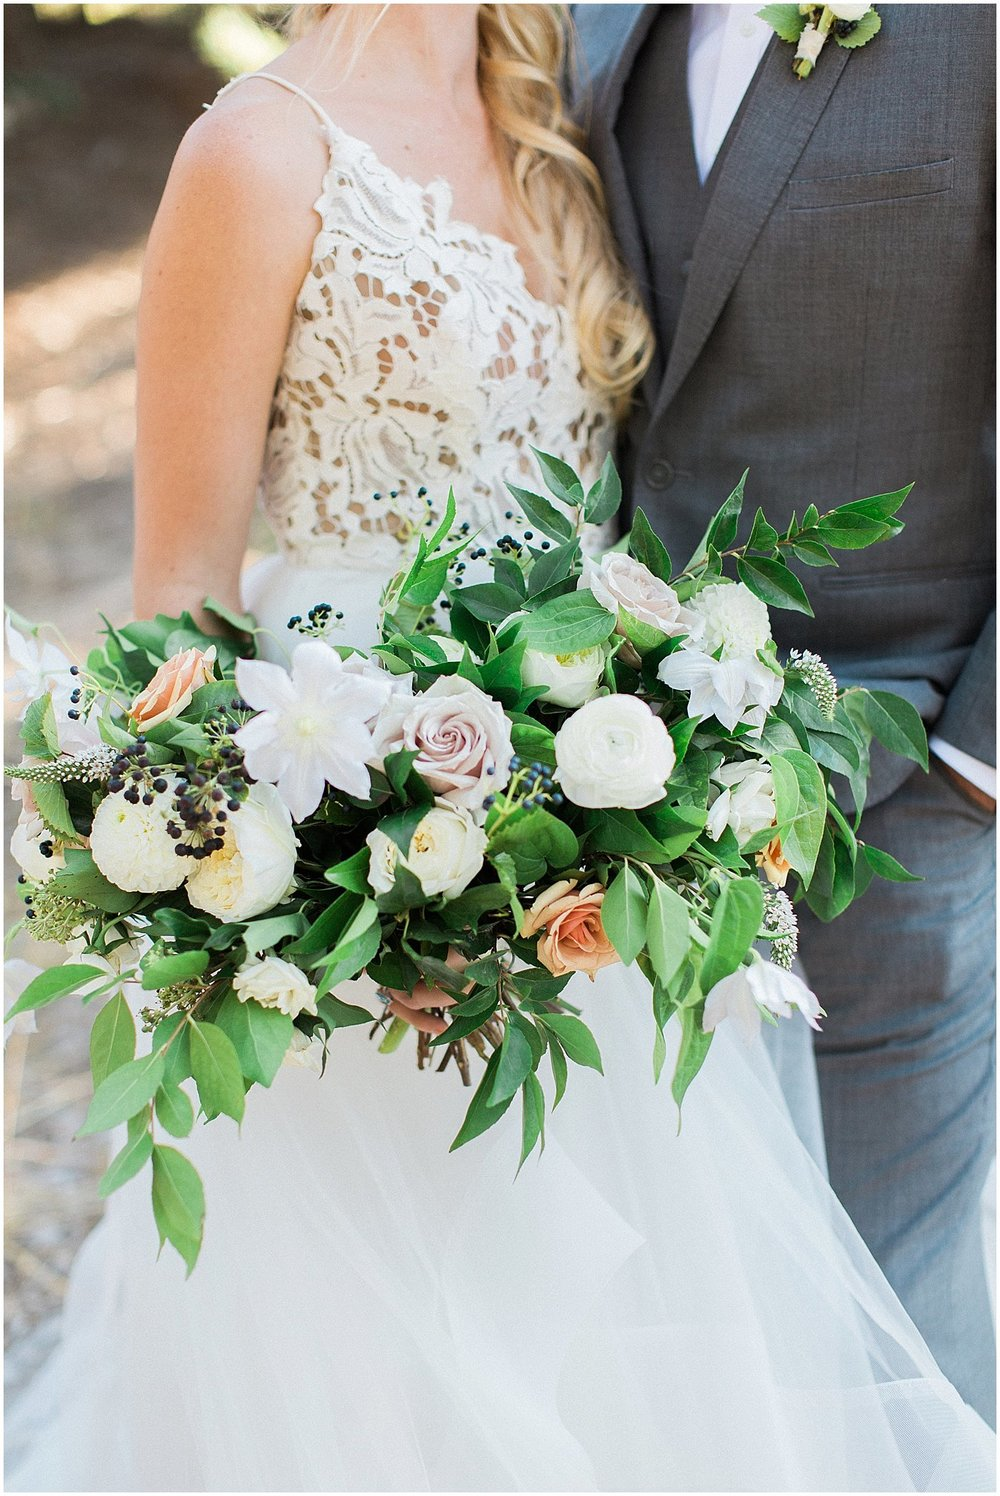 Hayley Paige Halo Wedding Dress & Whimsical Bouquet by Modern Bouquet featured on Style Me Pretty | Scottsdale Wedding Planner | Megan Dileen Events